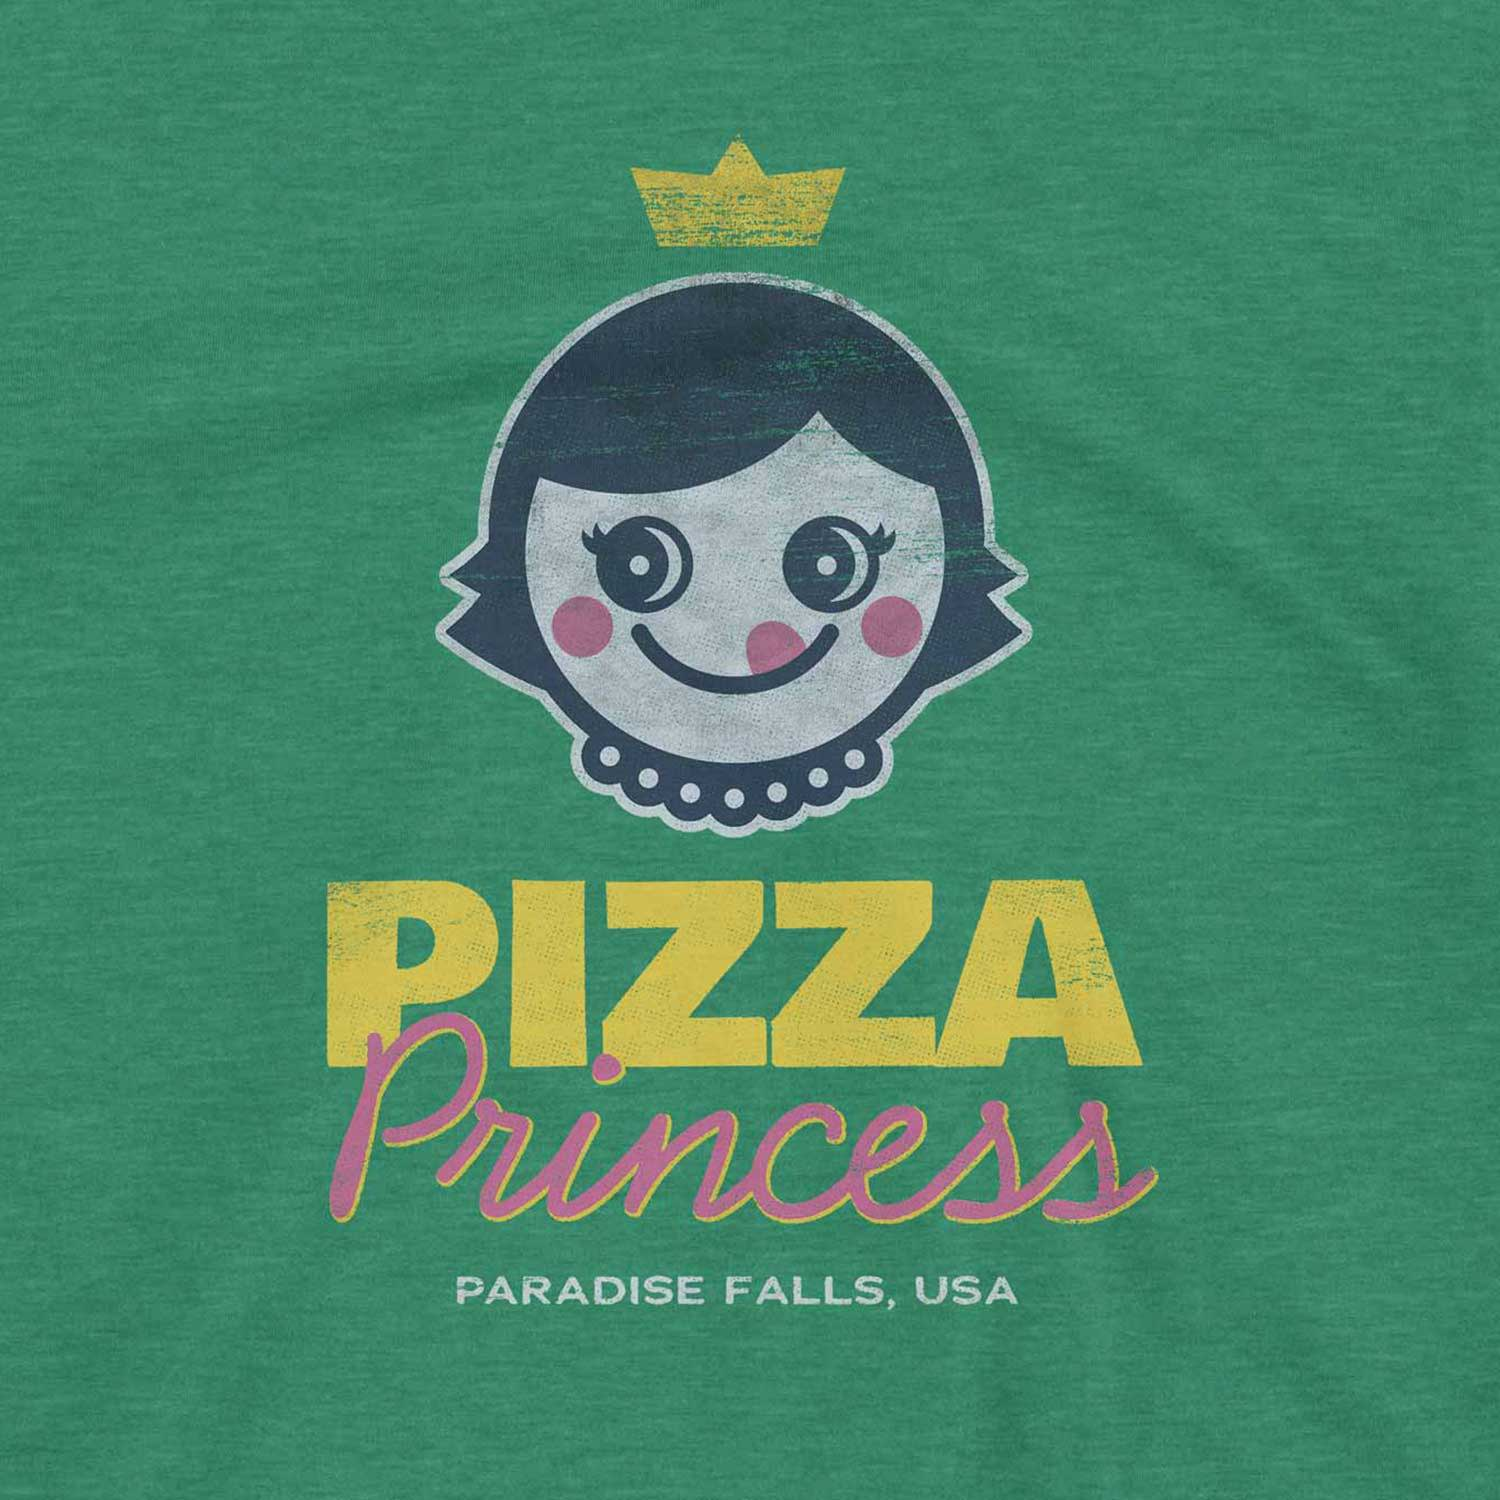 Pizza Princess Retro Inspired Unisex Graphic T Shirt